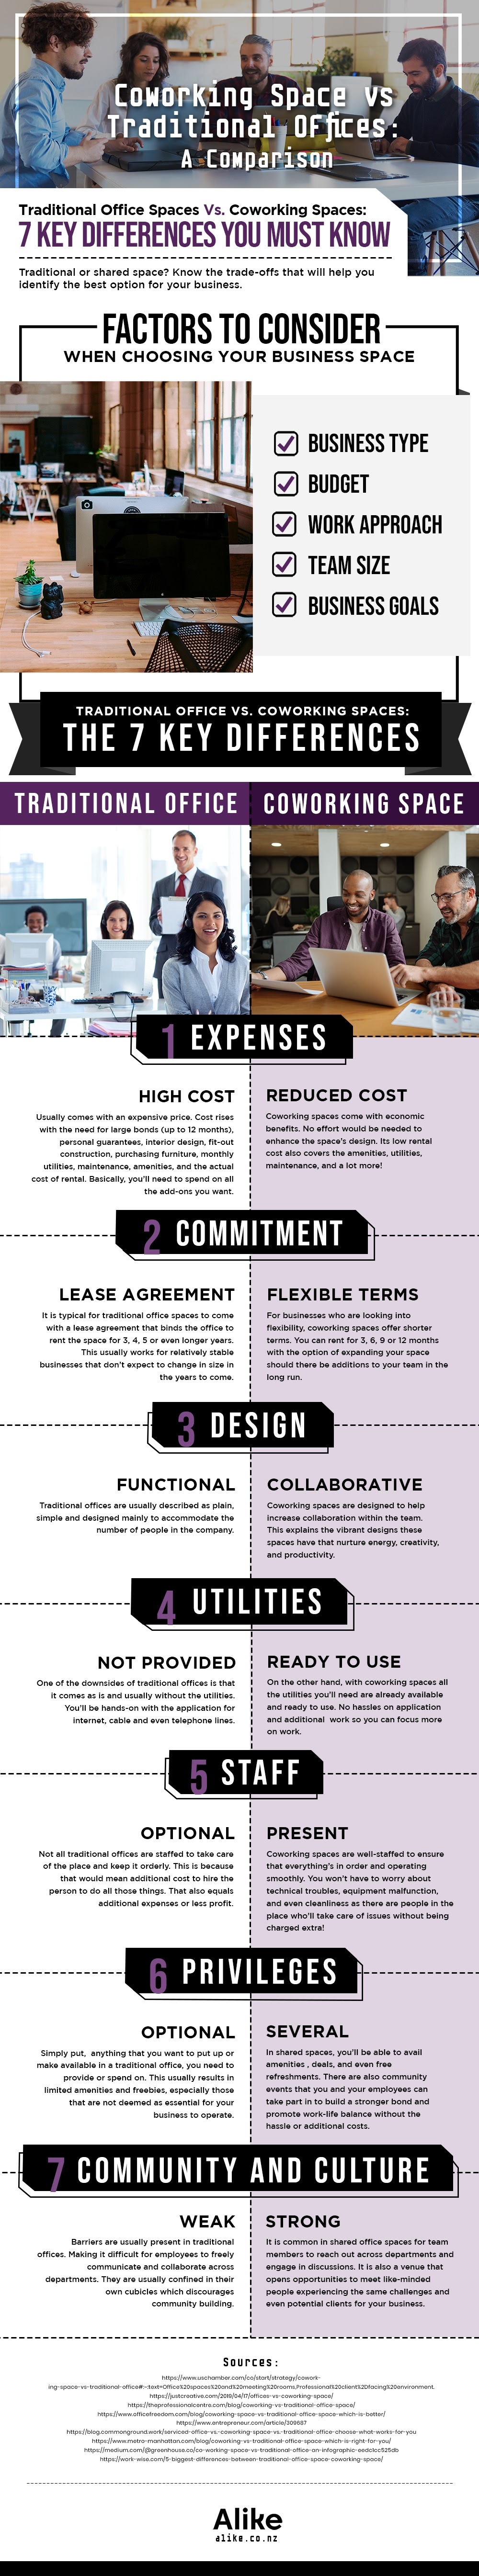 Coworking Space vs Traditional Offices: A Comparison #infographic